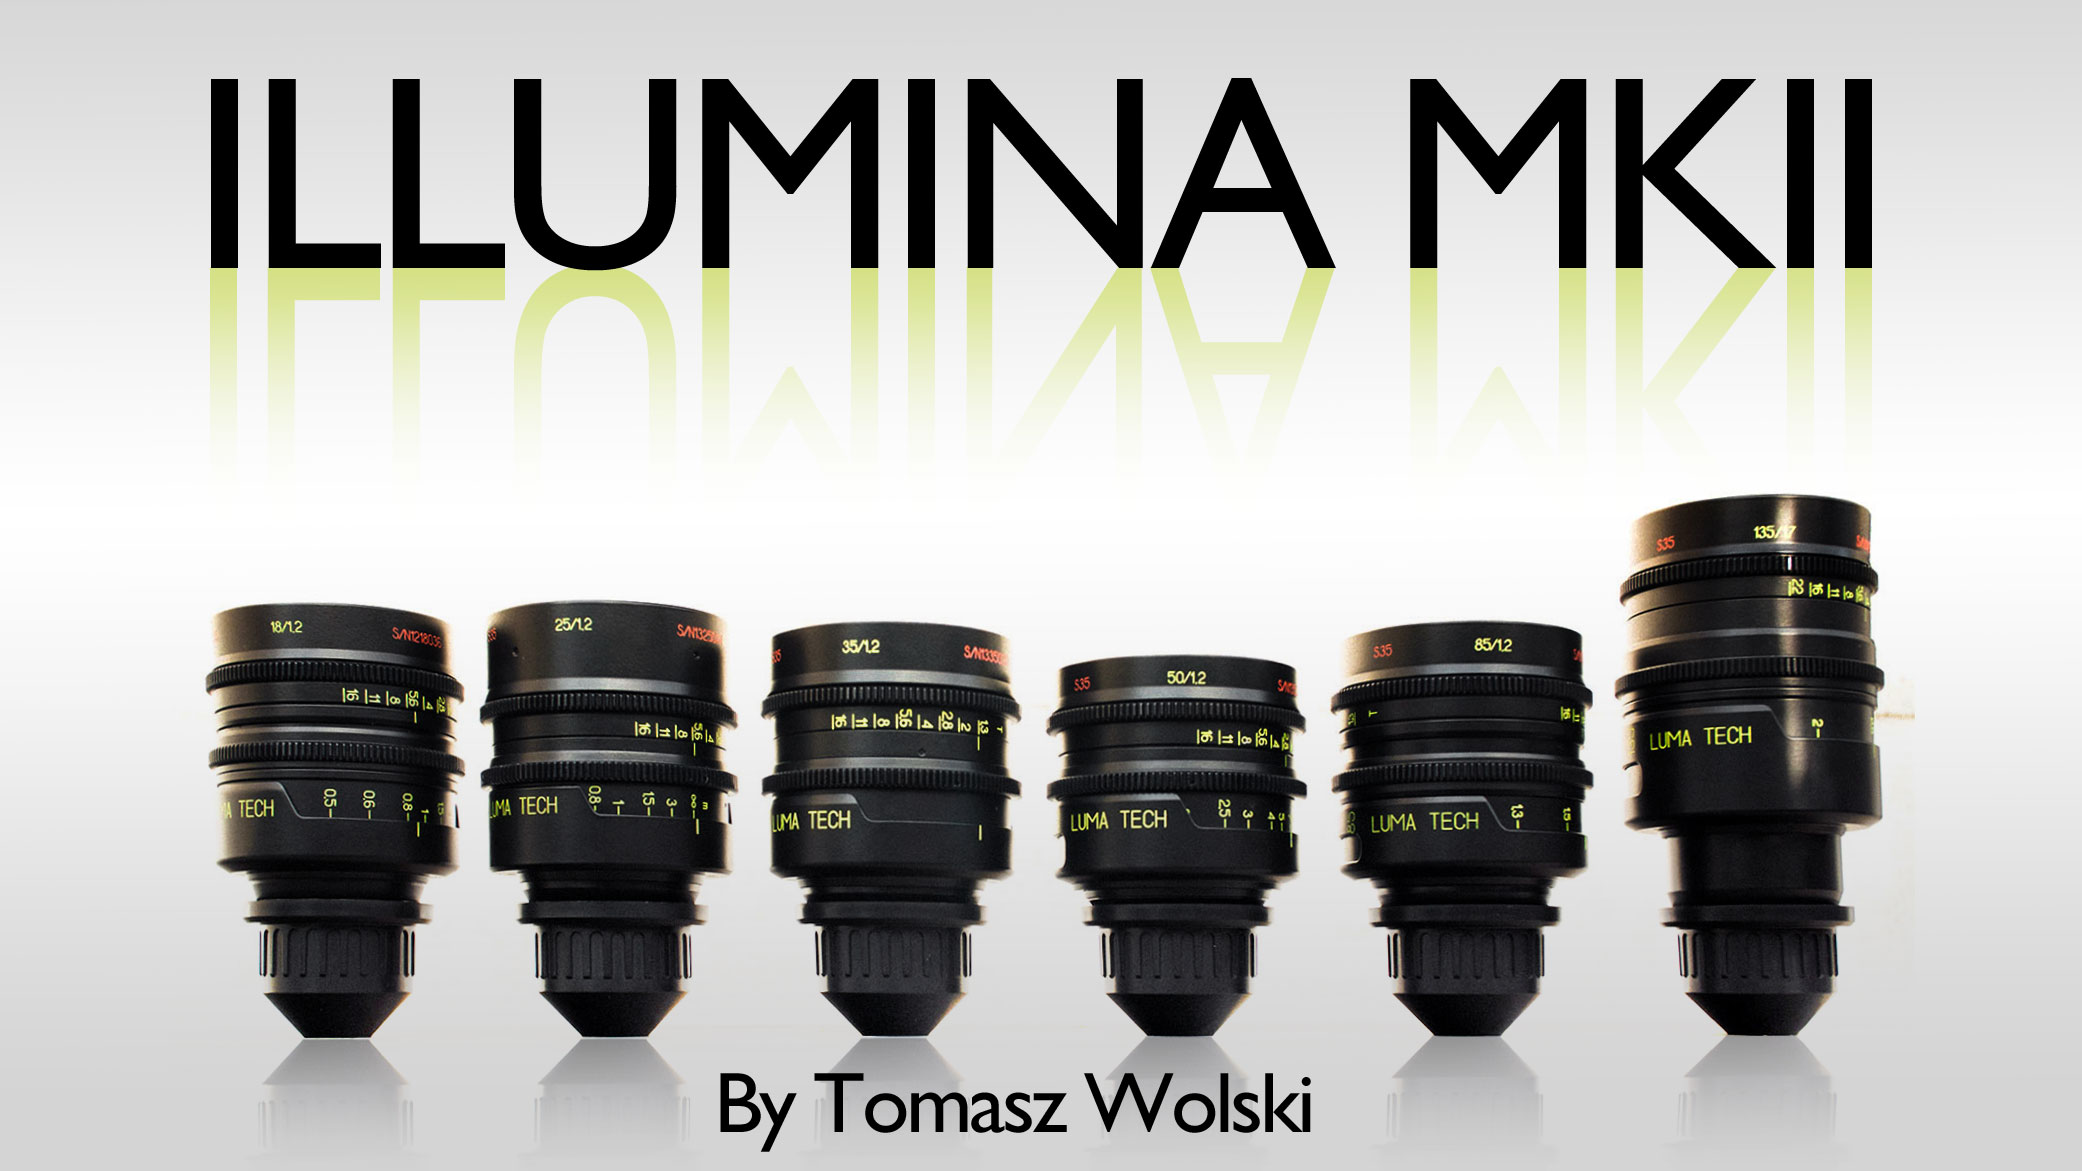 ILLUMINA (LOMO) Super35 High Speed Cine Lenses